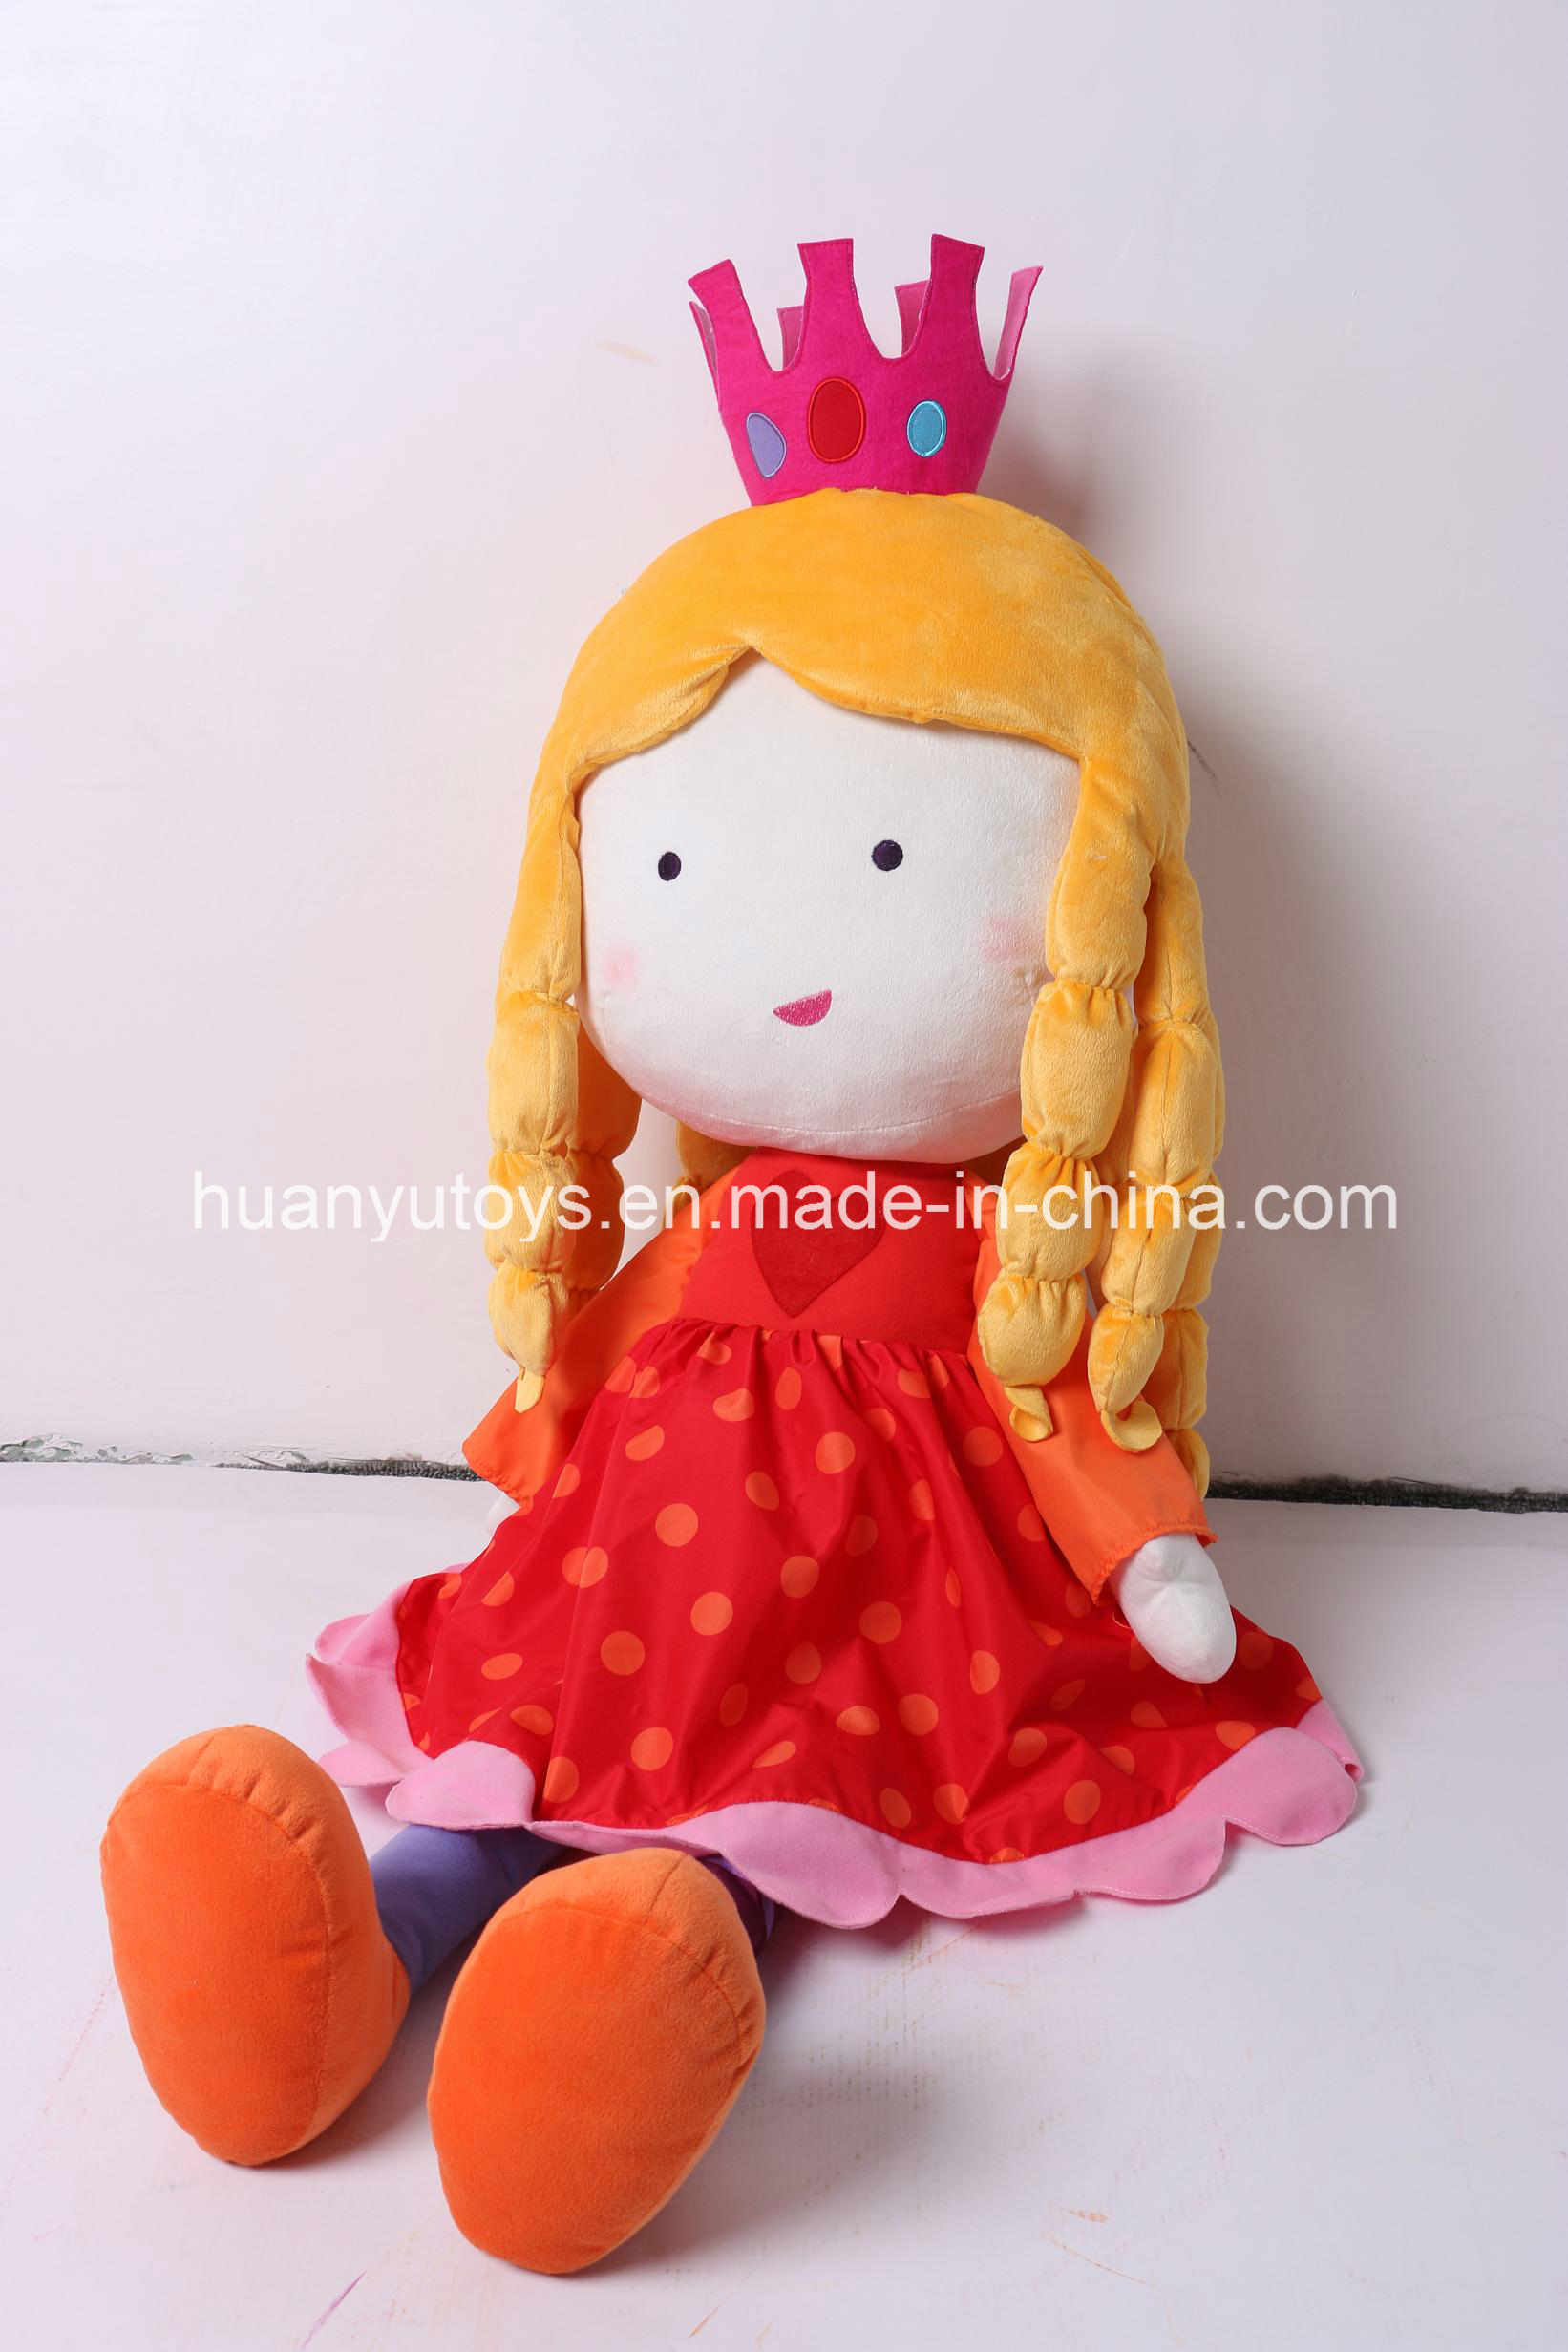 New Design 110cm Soft Plush Princess Toy